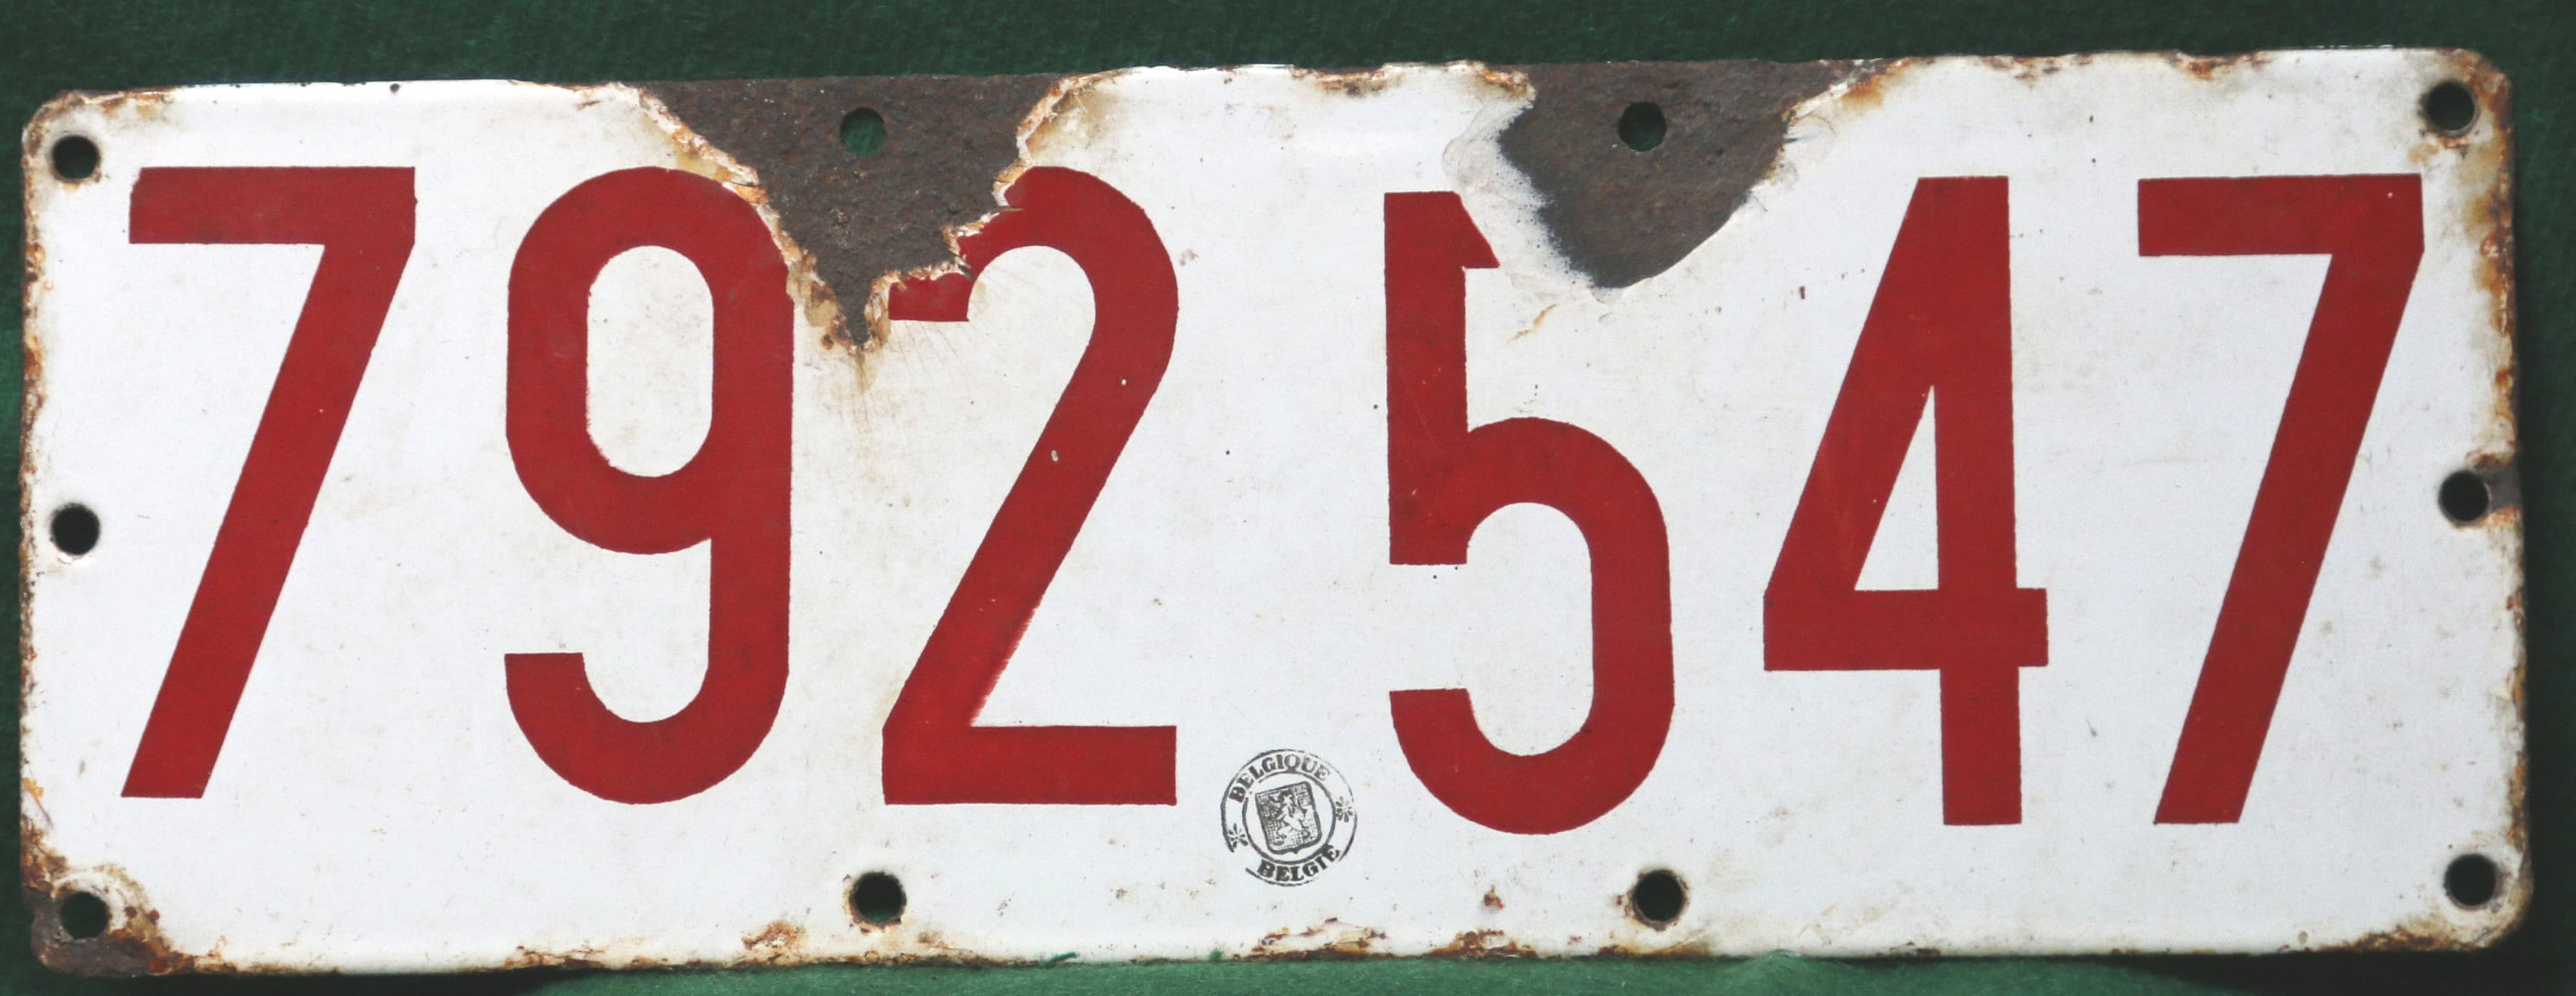 Very Old Belgian automobile registration number plates.